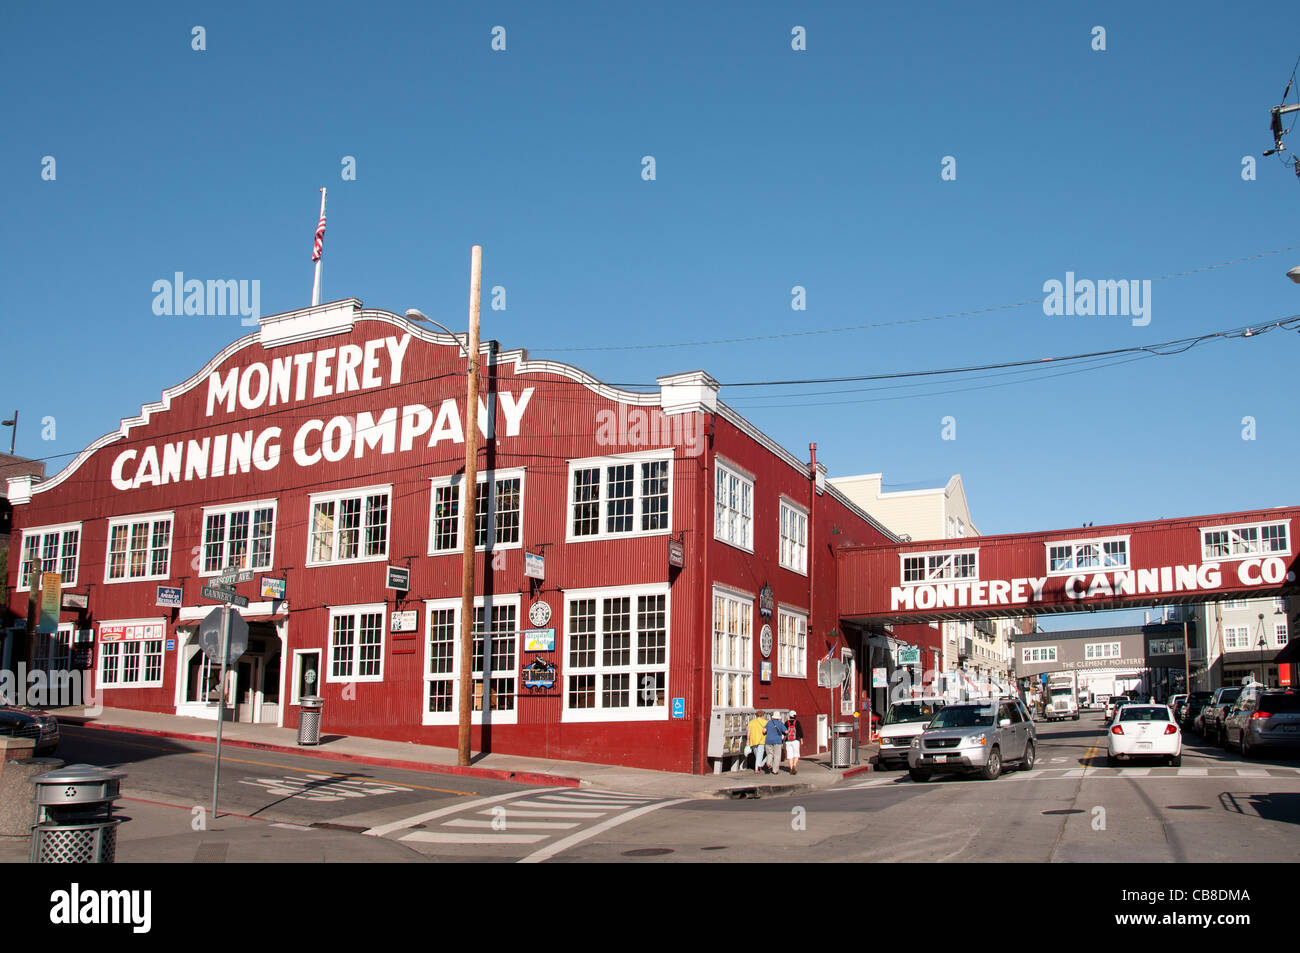 Monterey Canning Company California Port Harbor USA American United States of America - Stock Image